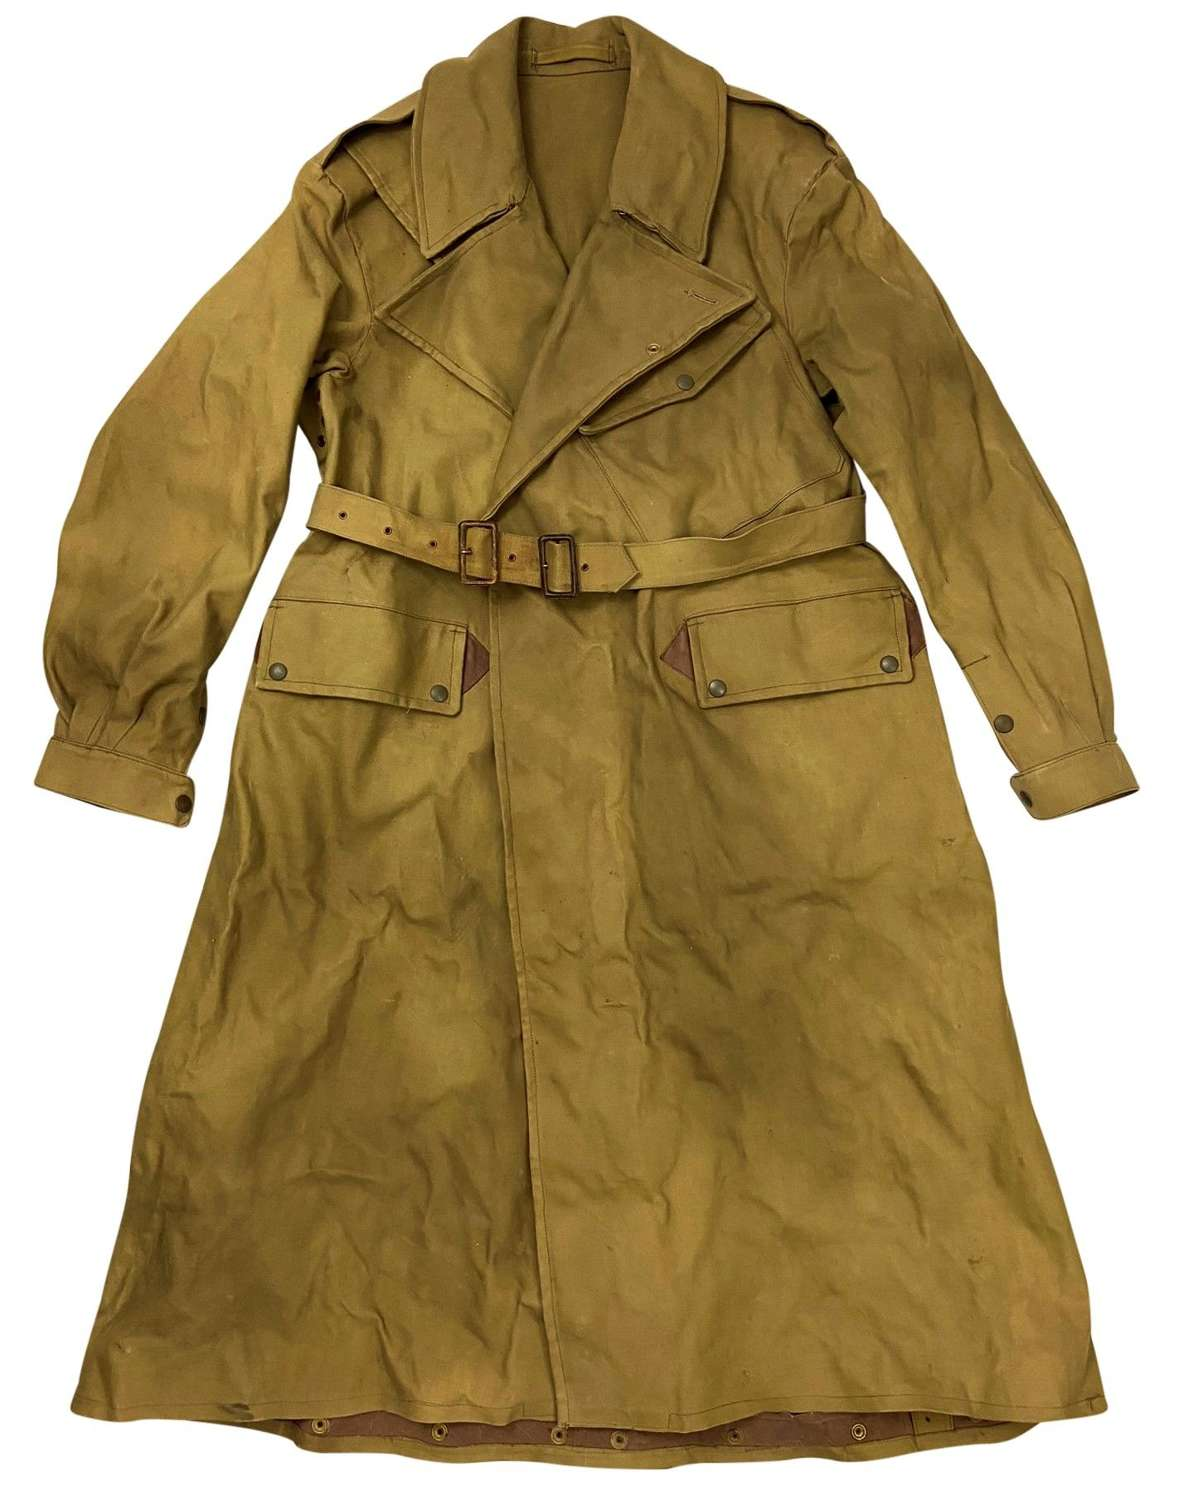 Original 1943 Dated British Army Dispatch Riders Coat - Size 12